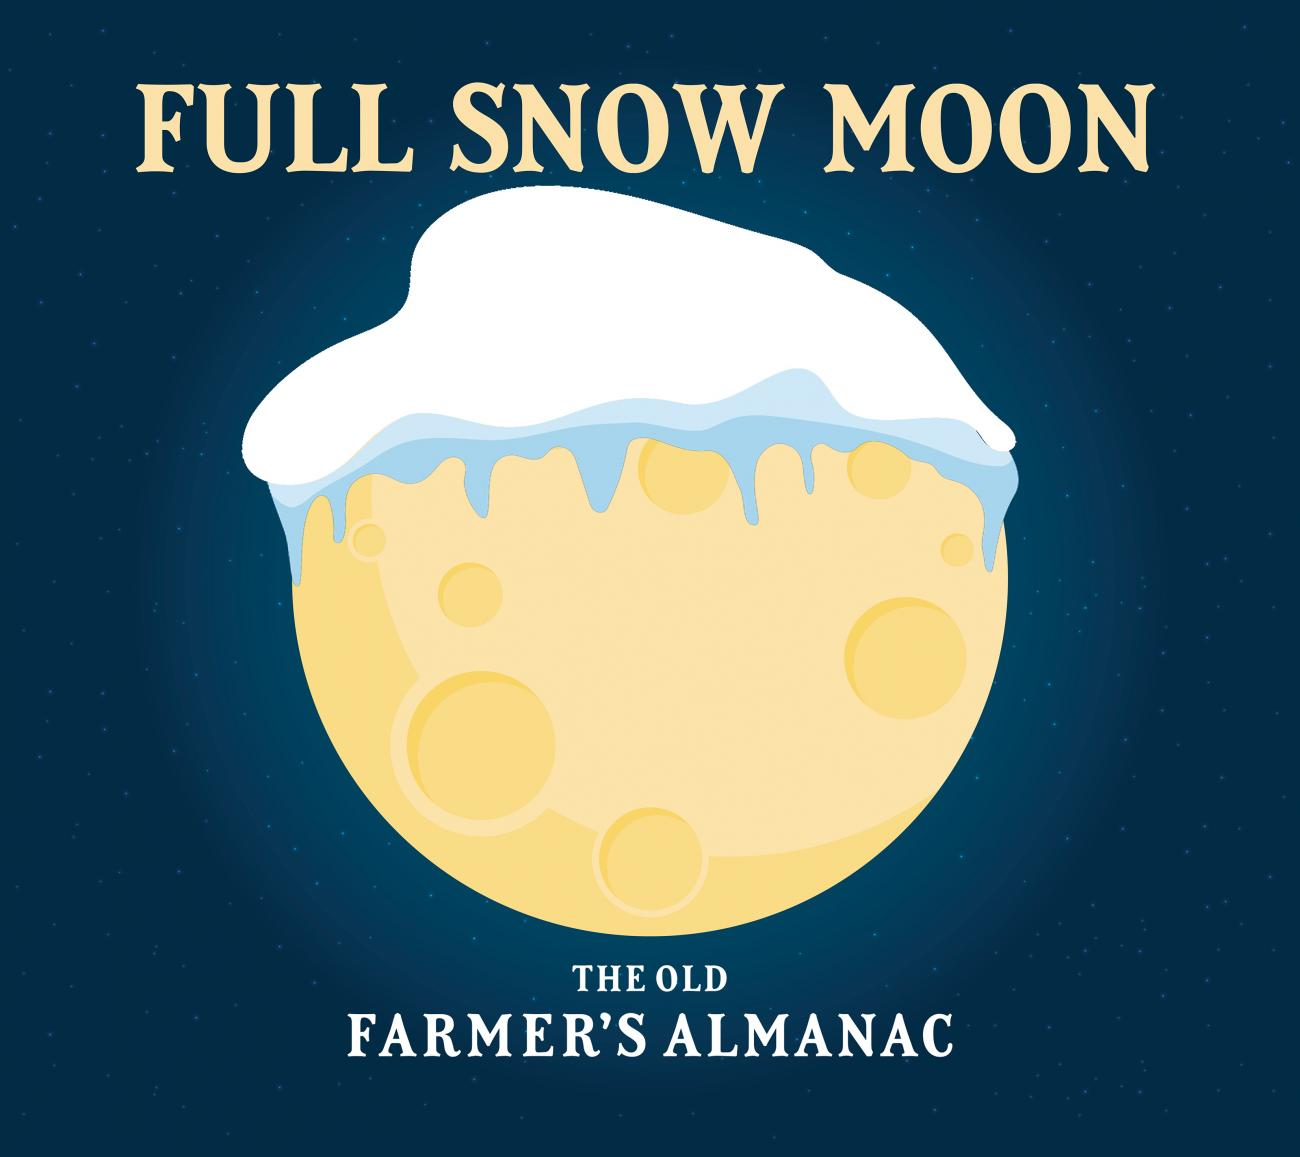 February 2020 Calendar Daily Quotes For Each Day Full Moon for February 2019: The Full Snow Moon & Supermoon | The